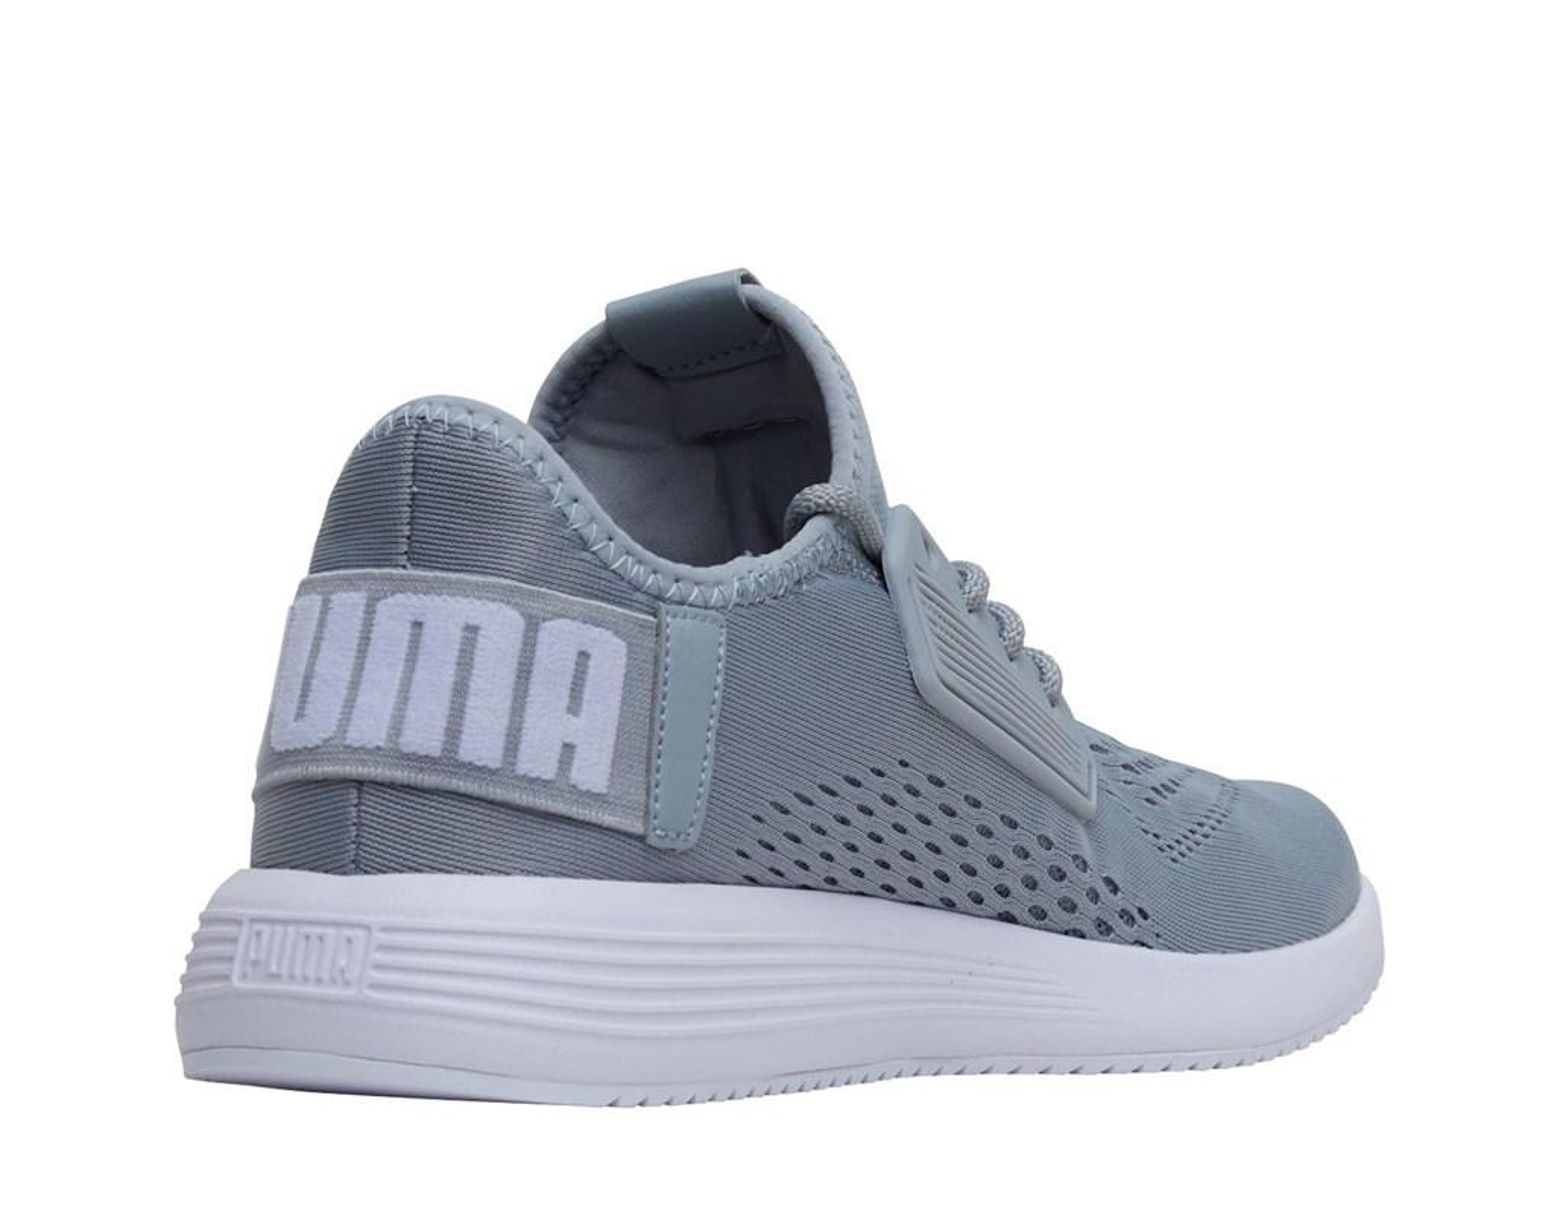 2e911bb2352 PUMA Uprise Mesh Trainers Quarry/ White in Gray for Men - Lyst